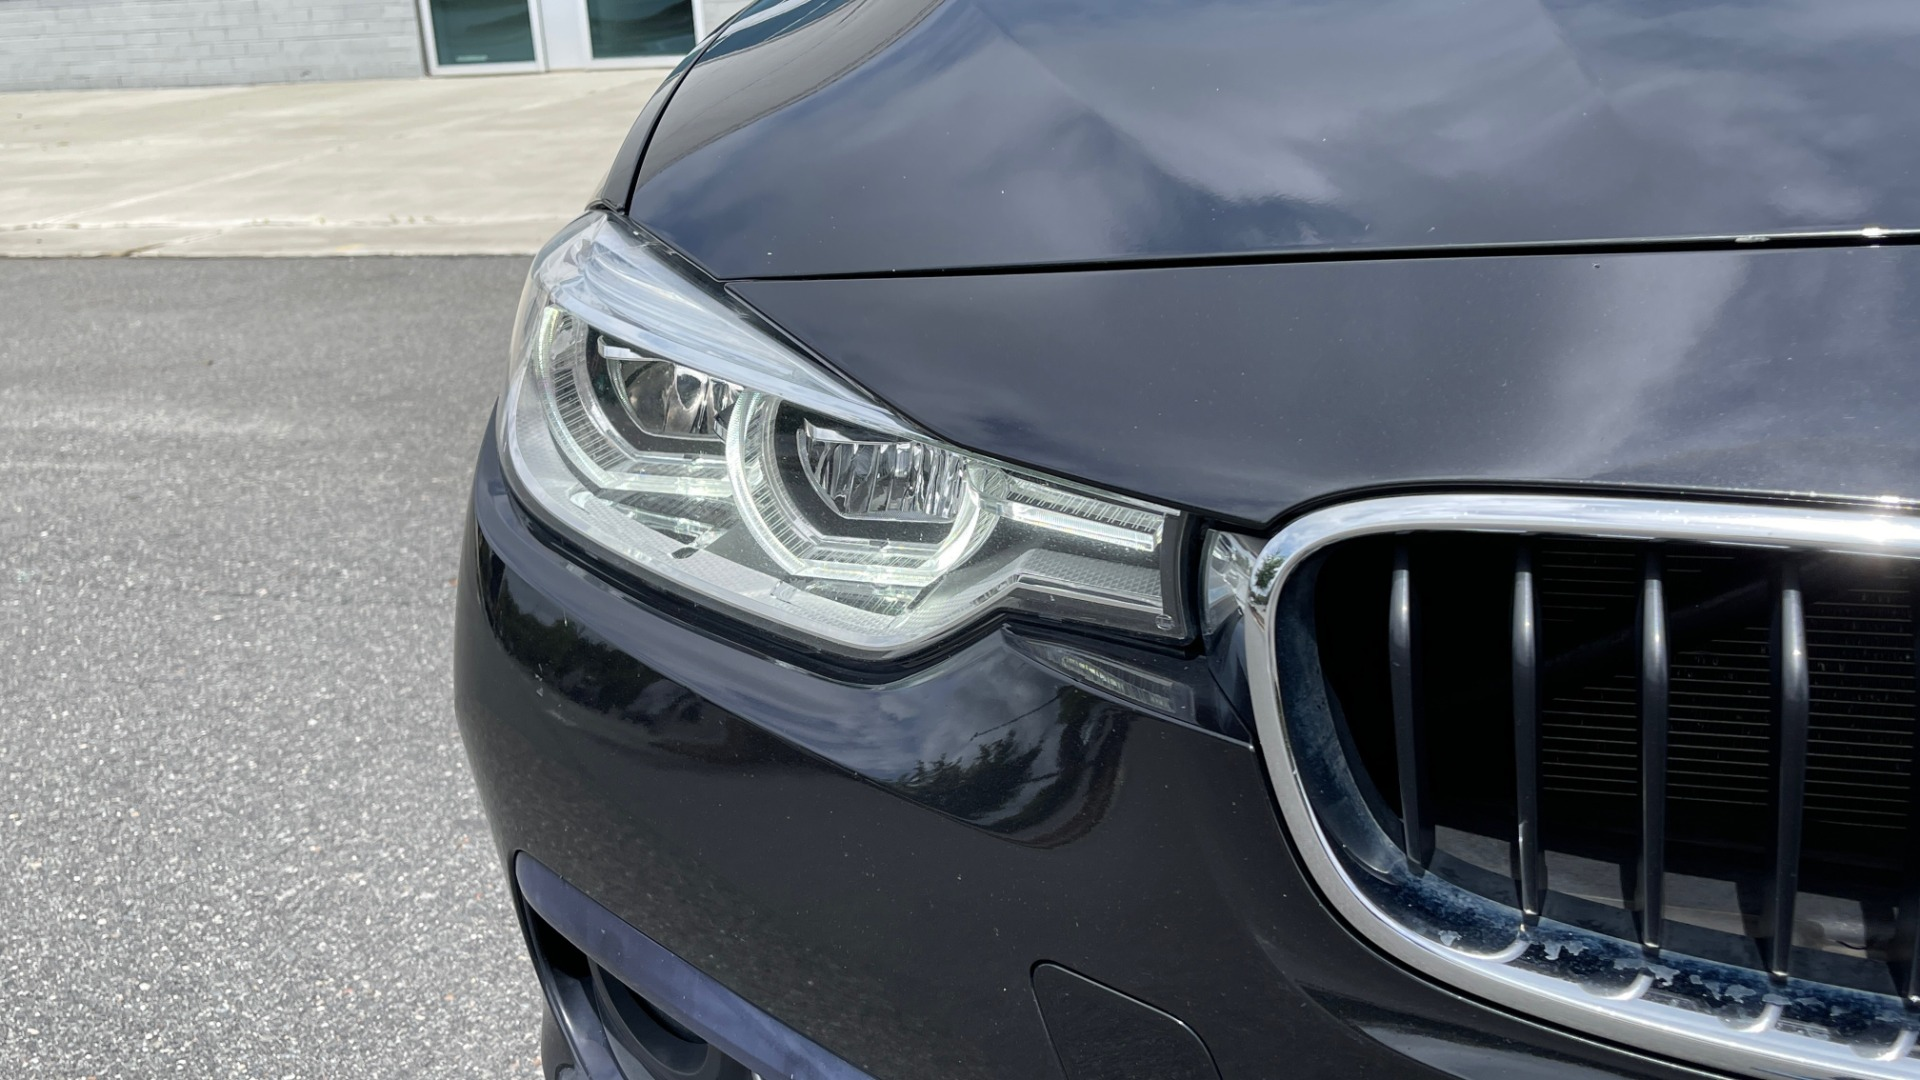 Used 2018 BMW 3 SERIES 330IXDRIVE / NAV / CONV PKG / ABSD / SUNROOF / REARVIEW for sale $29,599 at Formula Imports in Charlotte NC 28227 12